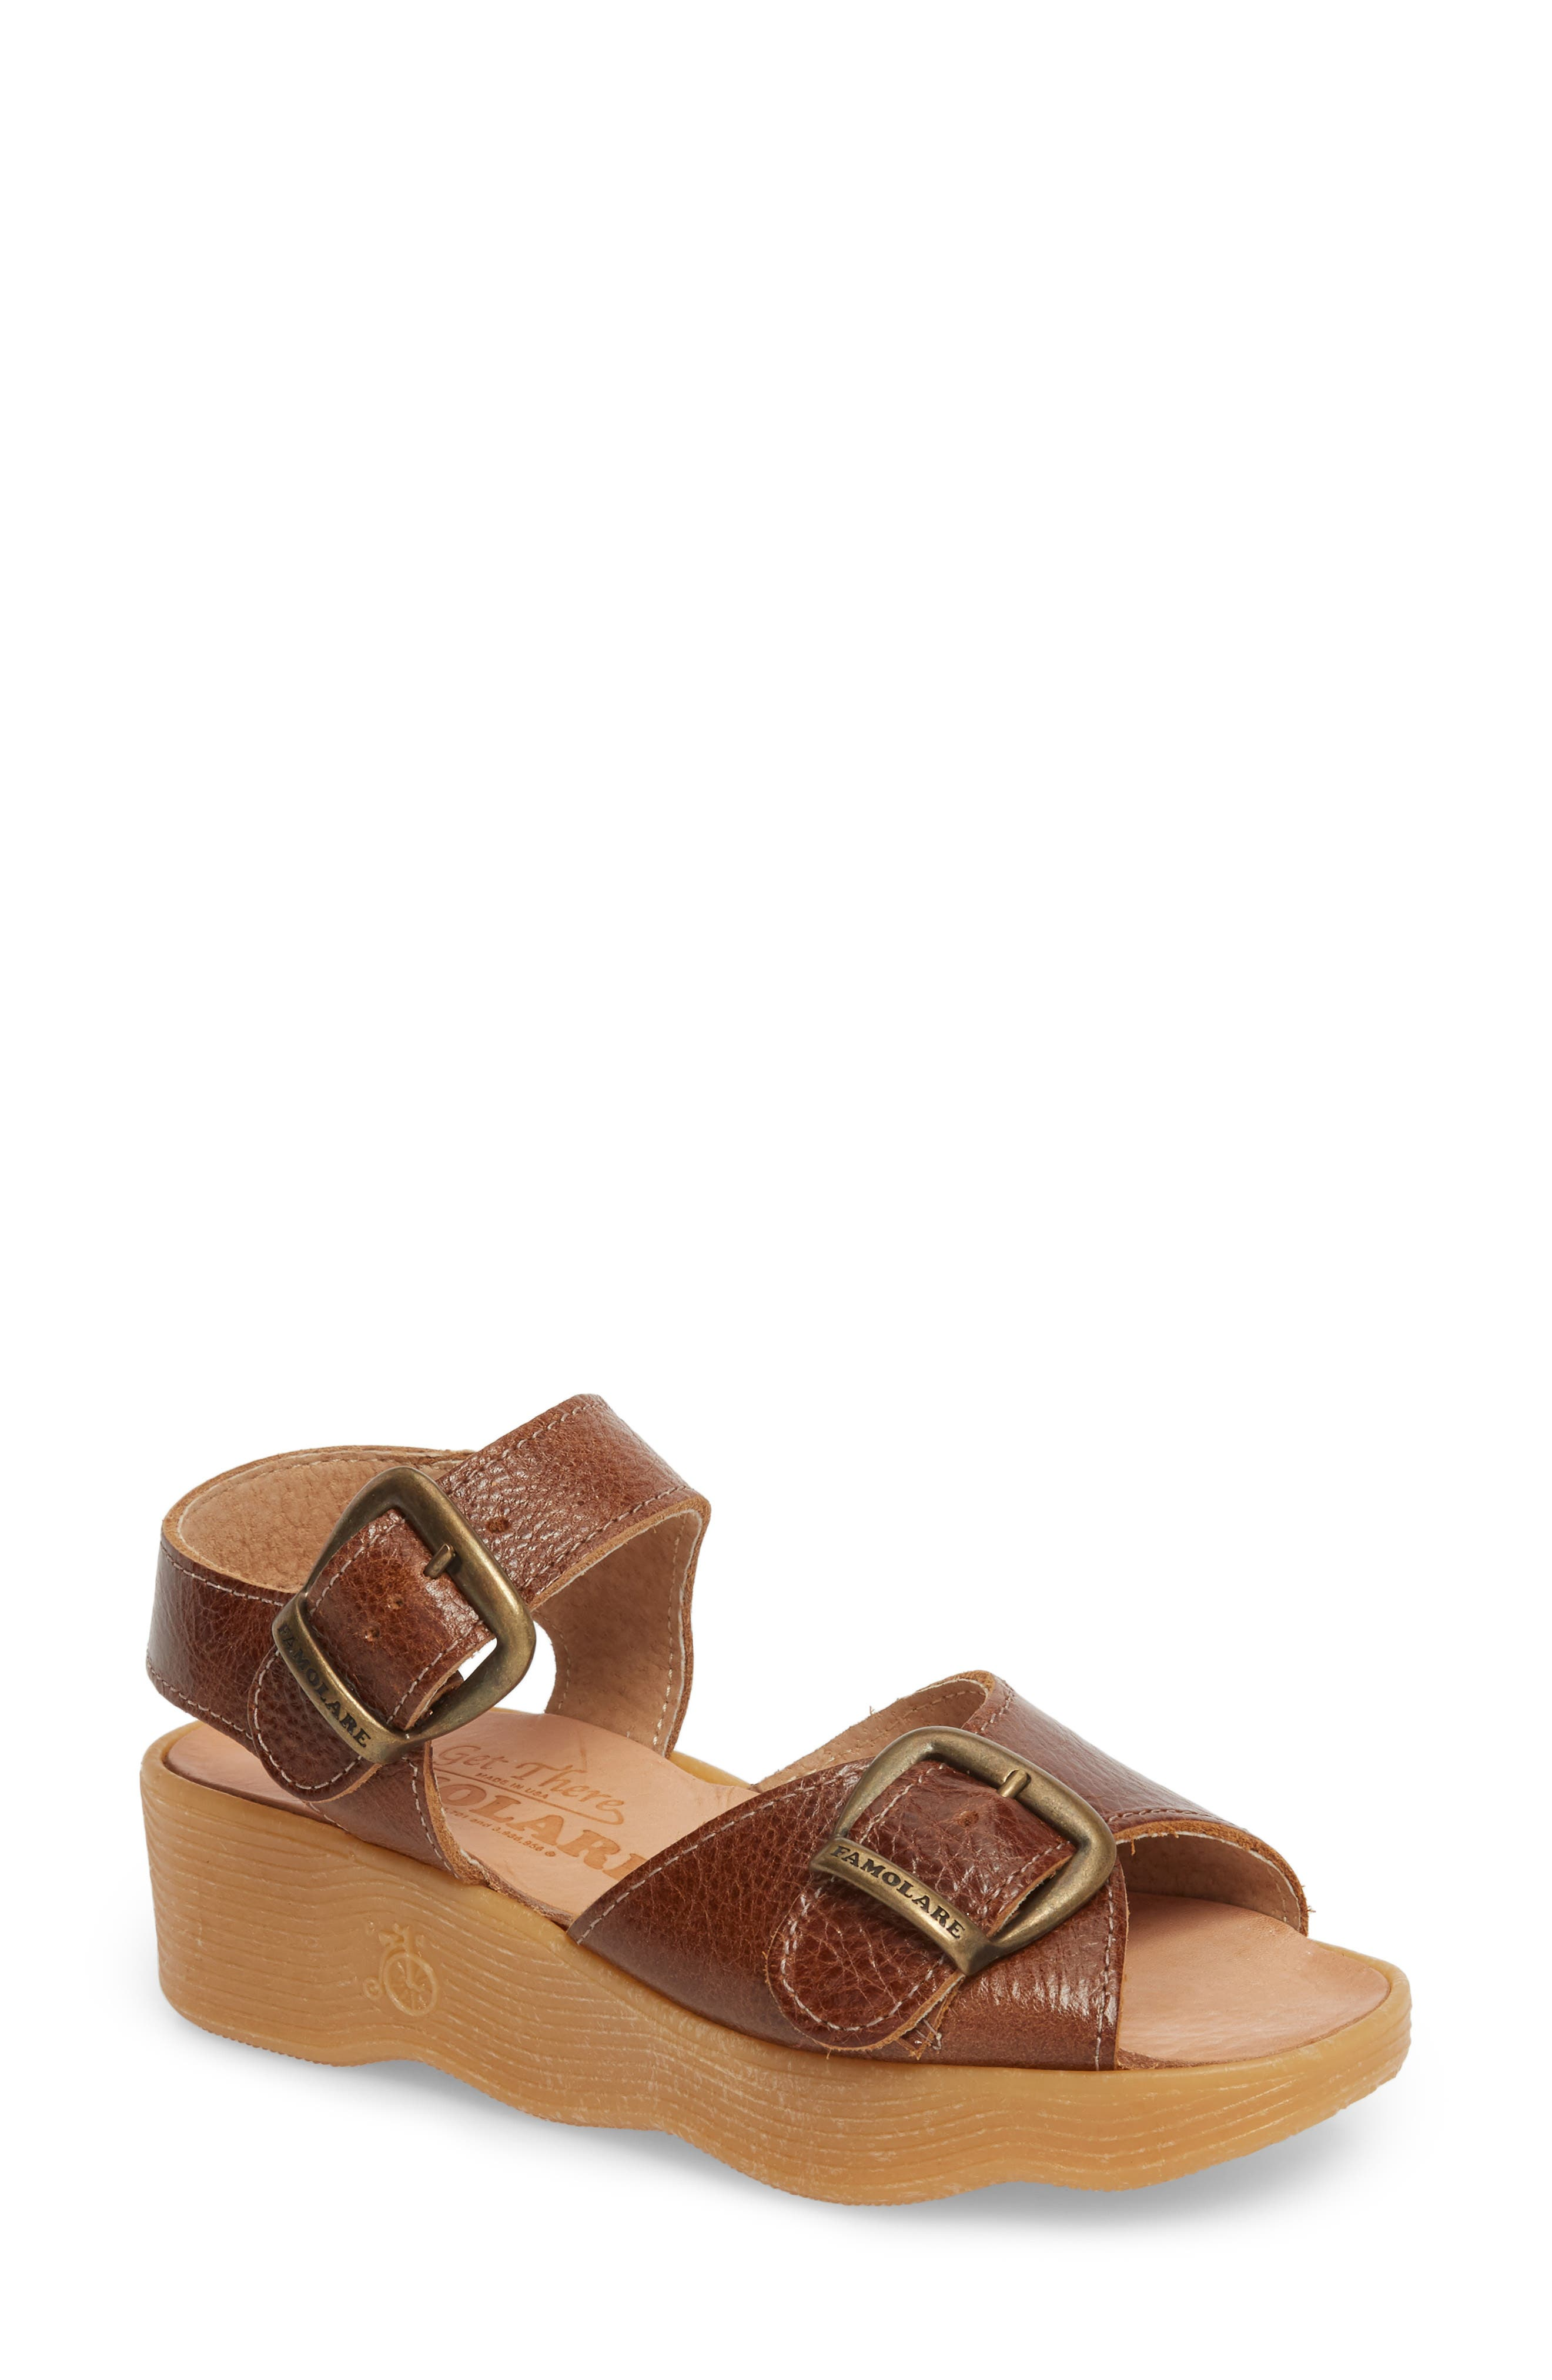 Double Play Platform Sandal,                             Main thumbnail 1, color,                             Earth Leather